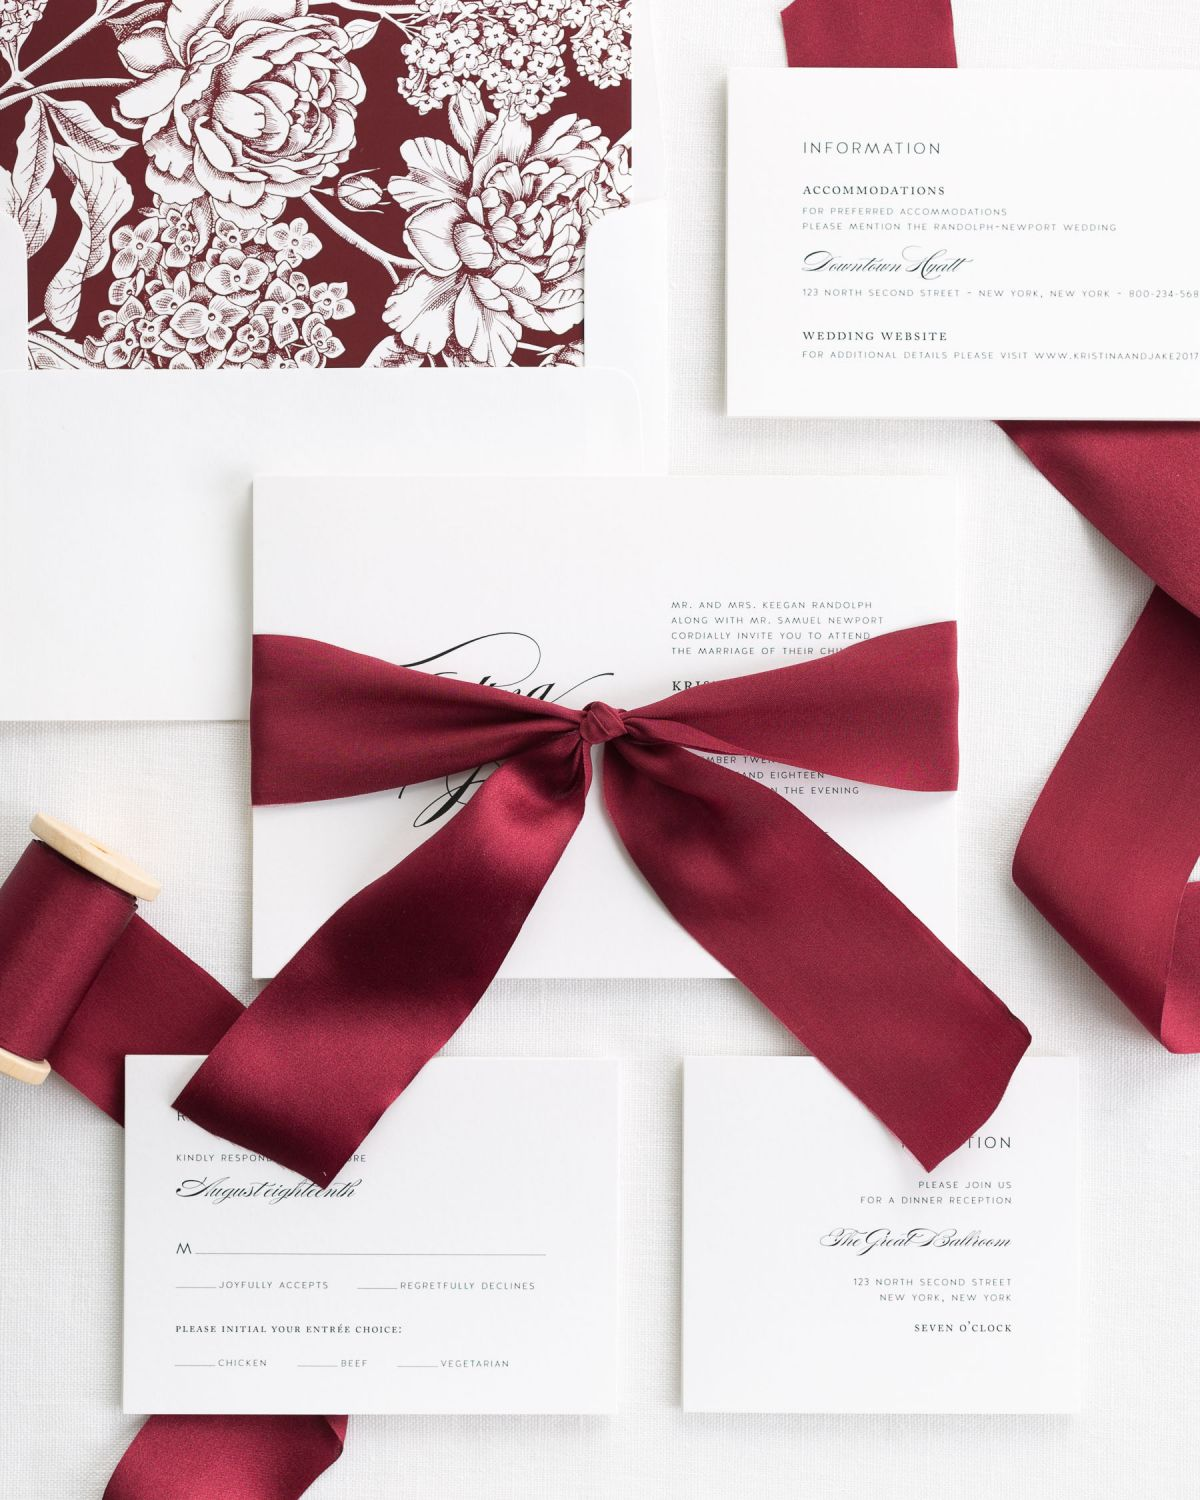 Complete Wedding Invitations with Wine Ribbon and Enclosures